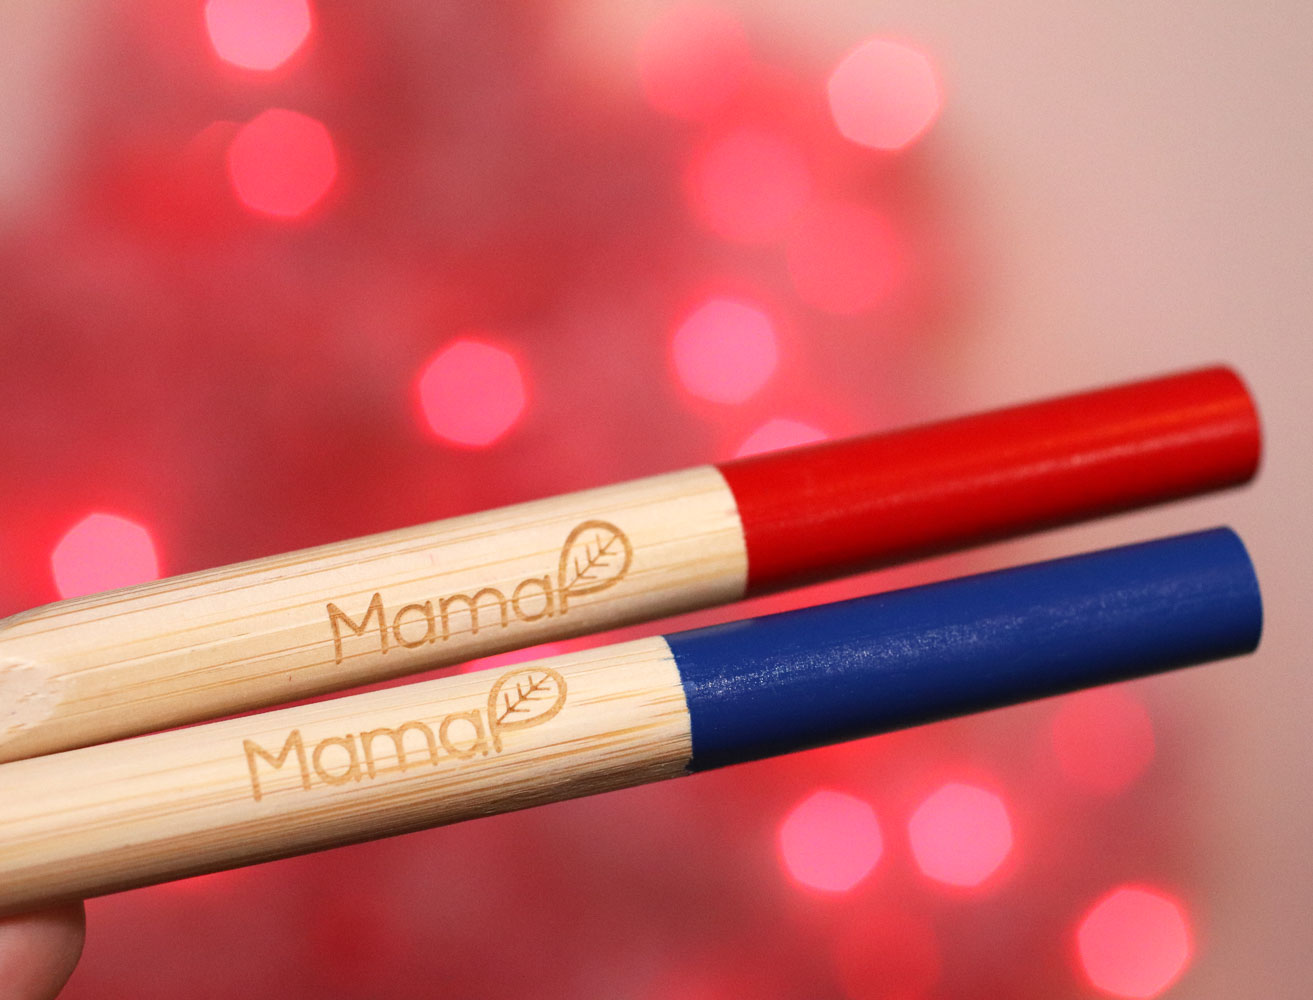 Woman Owned Holiday Gift Guide 2019 - MamaP toothbrushes